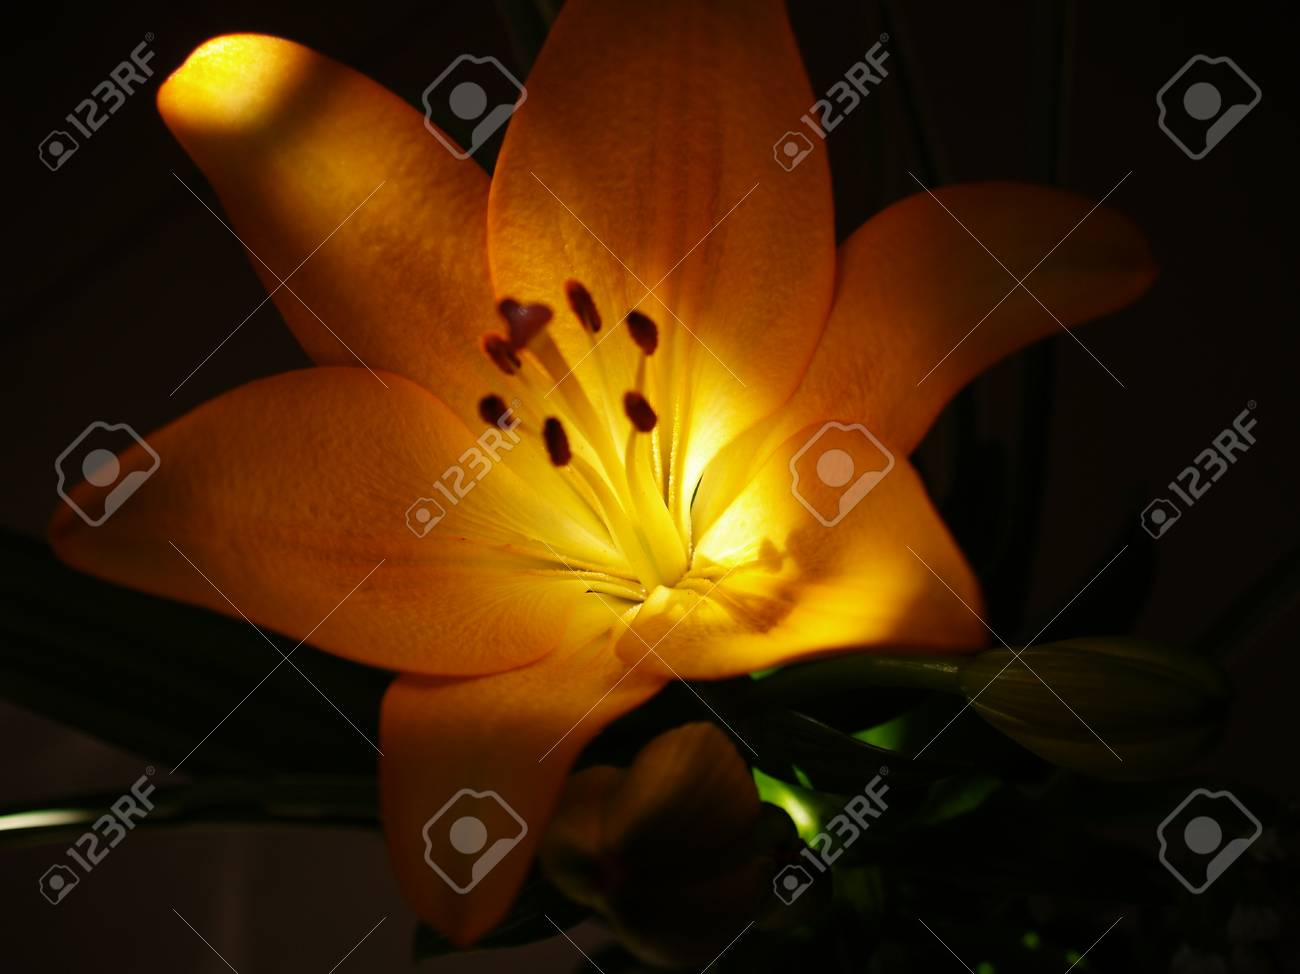 Zephyranthes lily flower common names for species in this genus stock photo zephyranthes lily flower common names for species in this genus include fairy lily rainflower zephyr lily magic lily atamasco lily izmirmasajfo